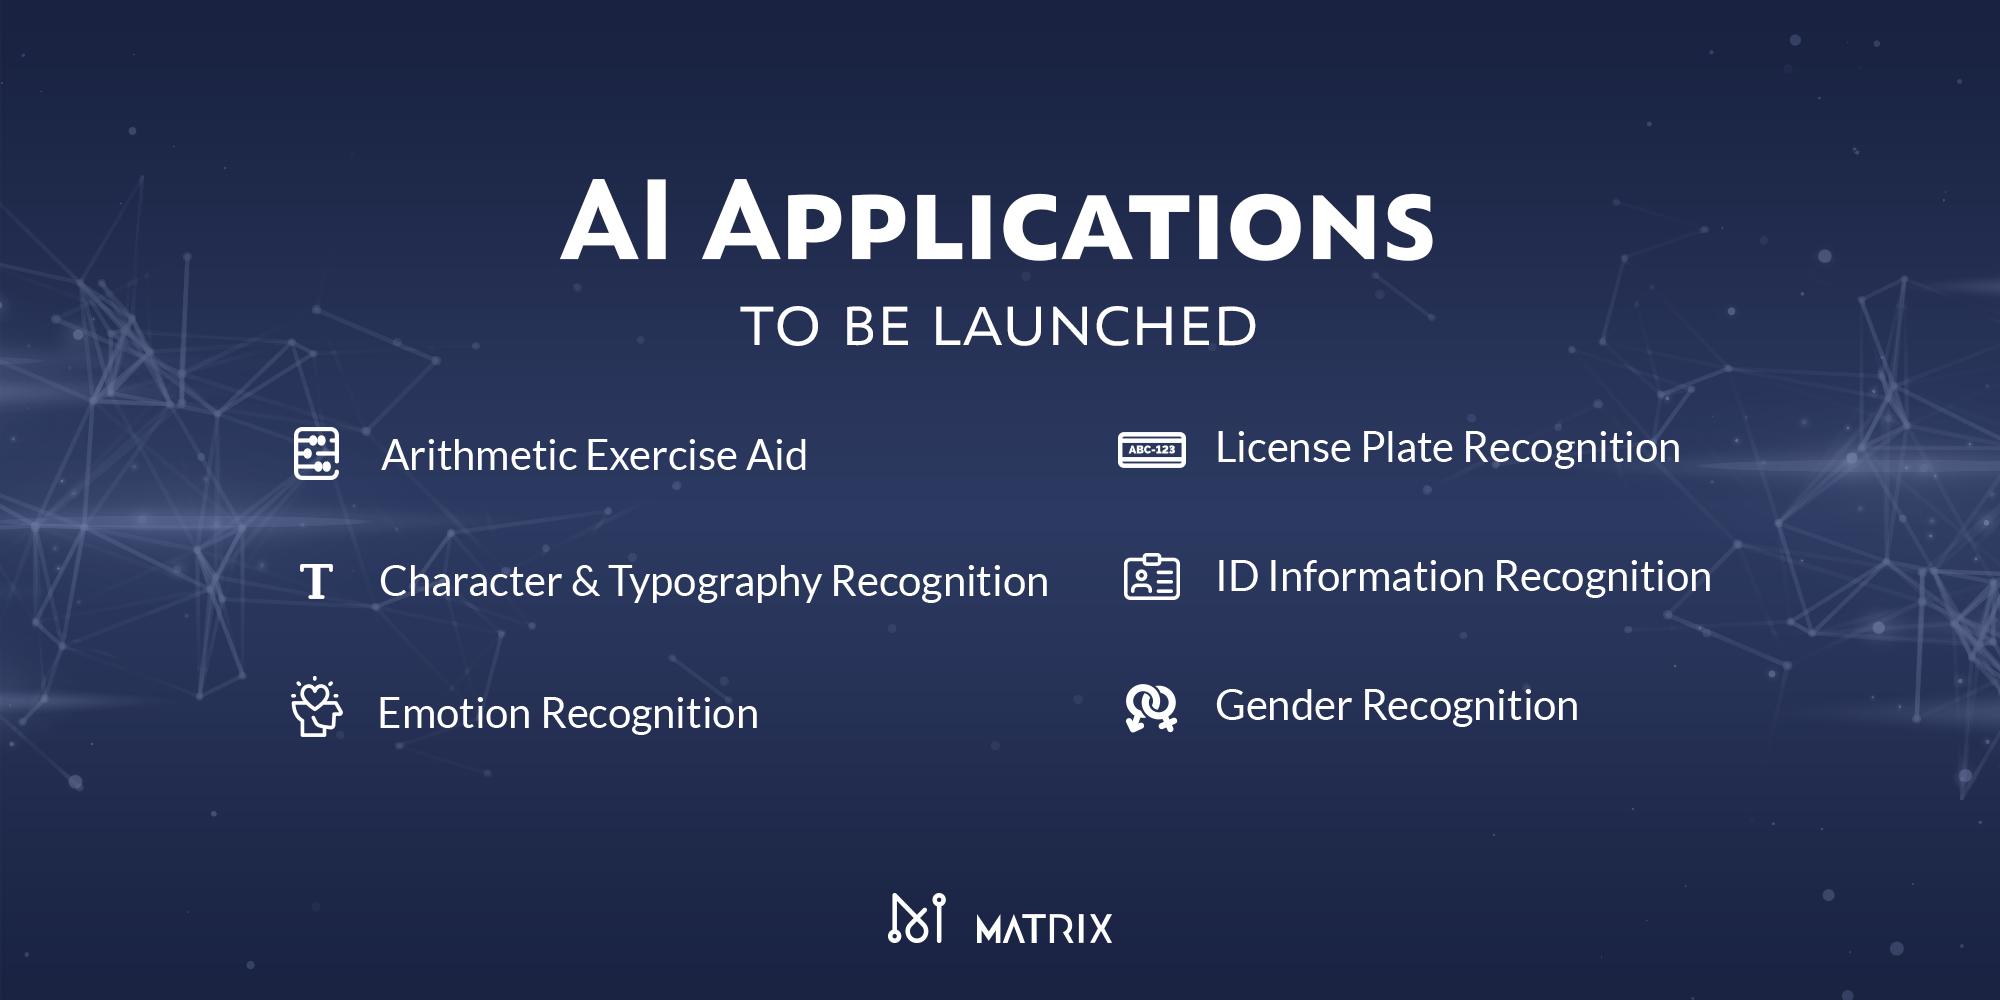 Numerous AI Applications About to Be Launched